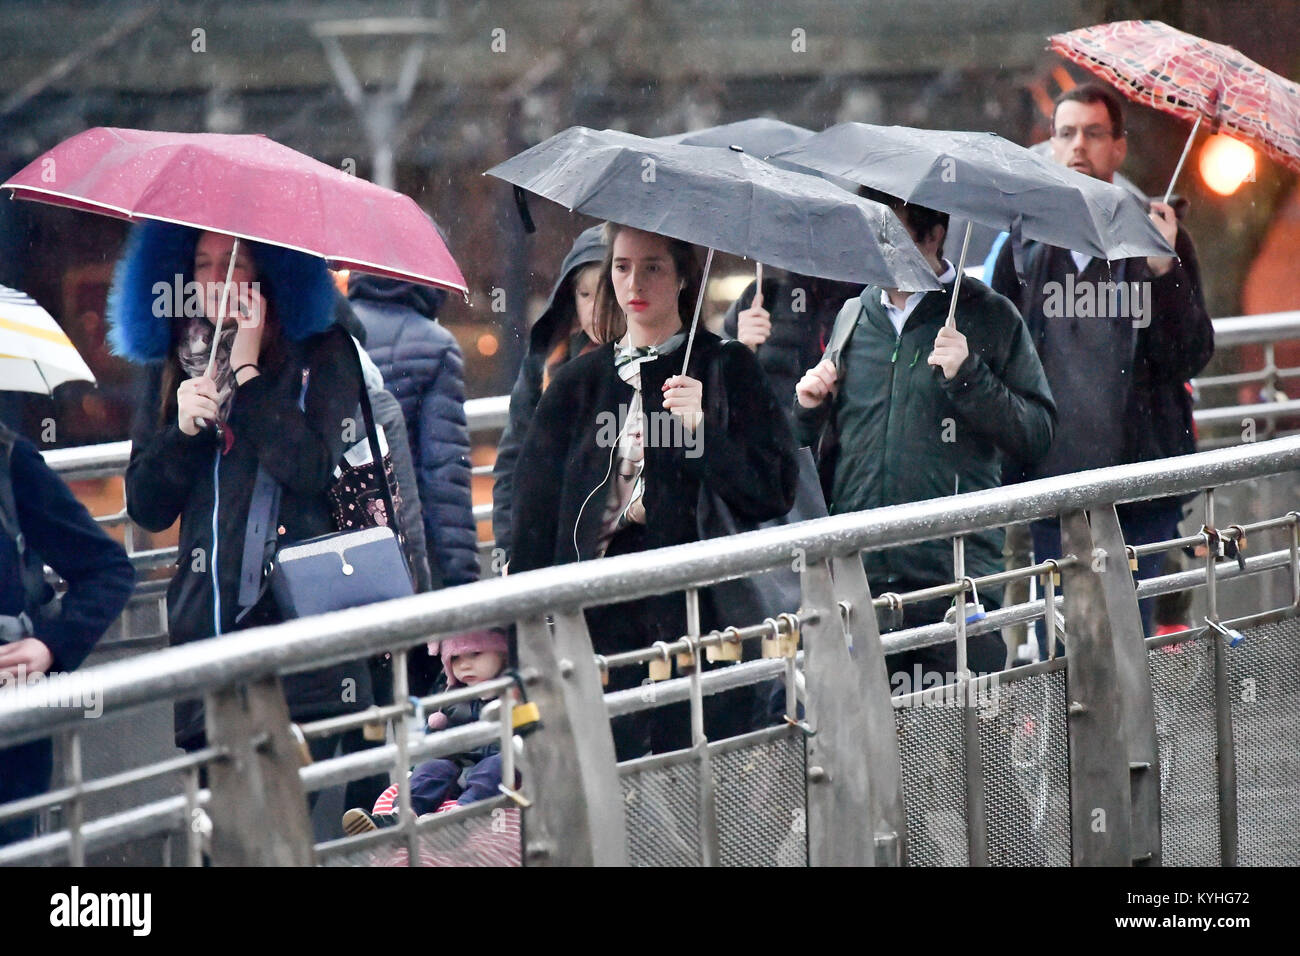 People shelter under umbrellas in pouring rain as they commute to work over Millennium Bridge, Bristol, on what - Stock Image